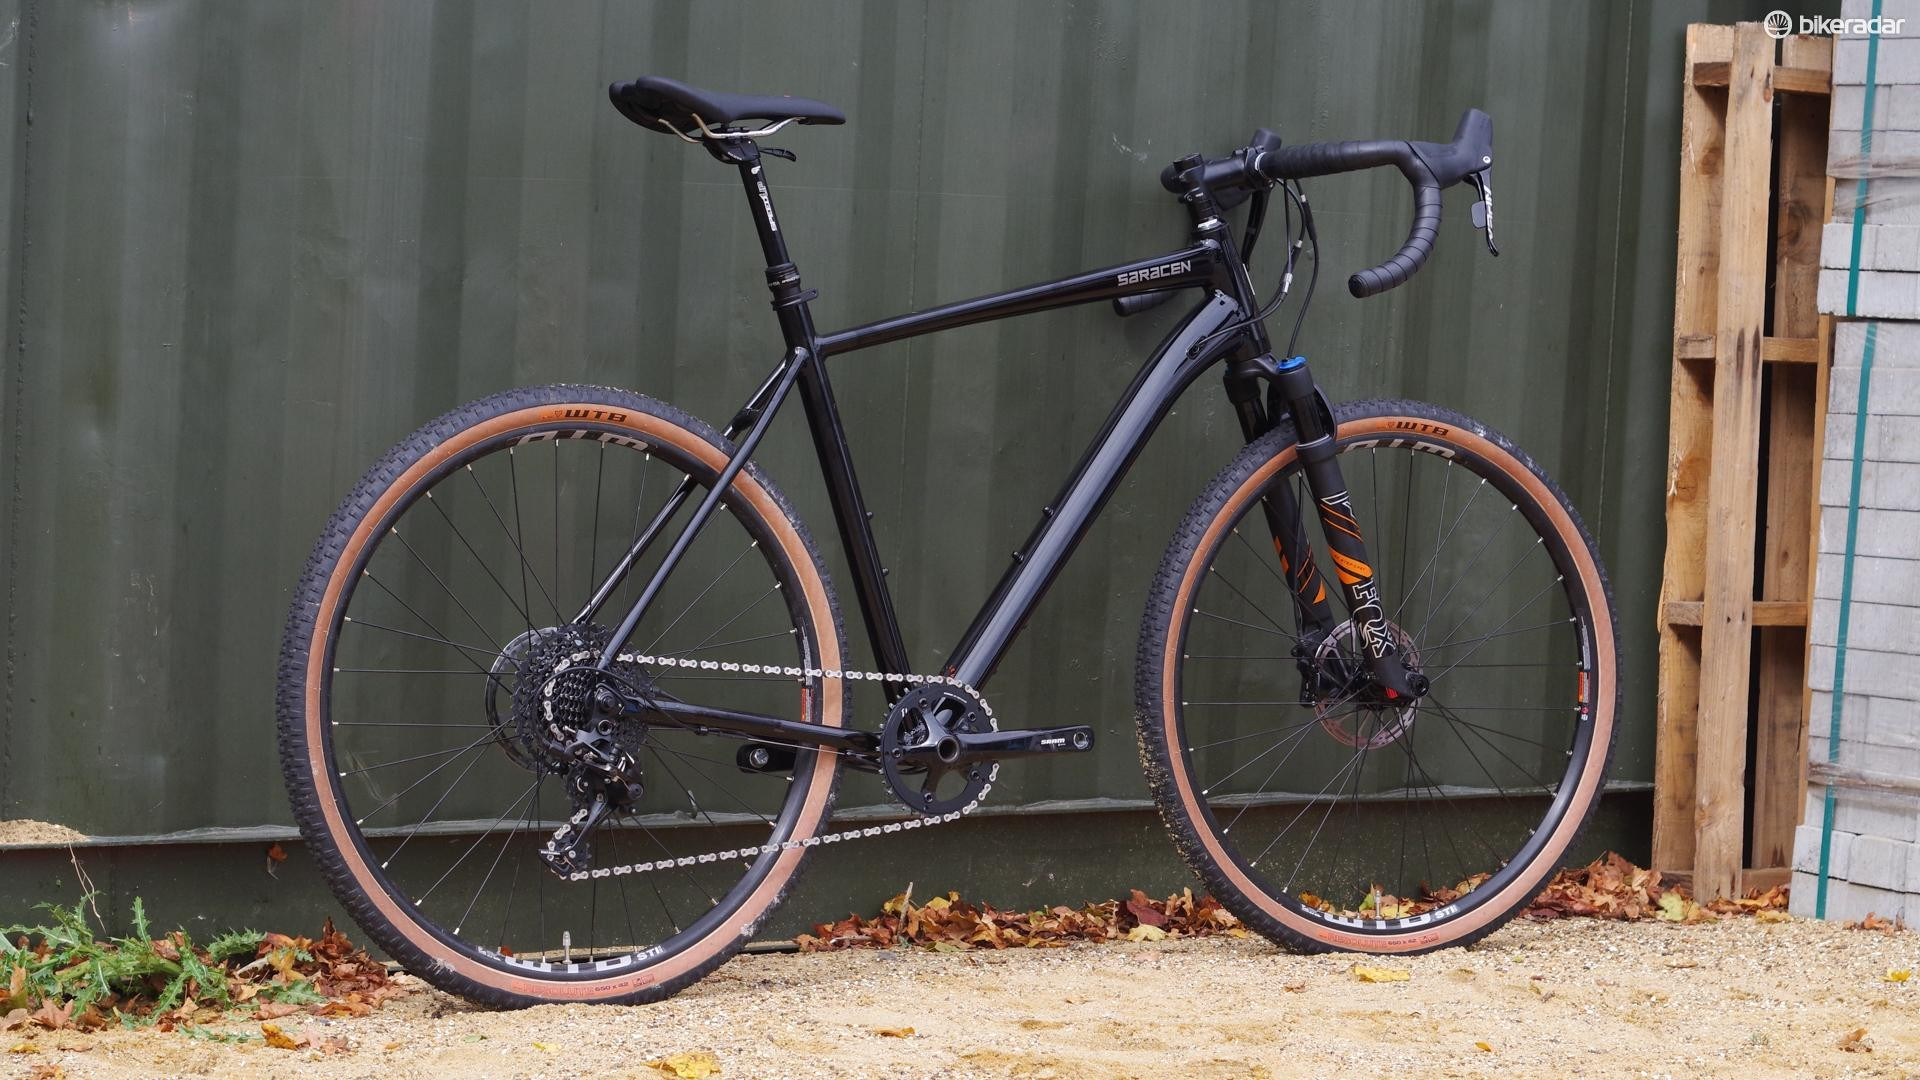 Do dropper and suspension a great gravel bike make?